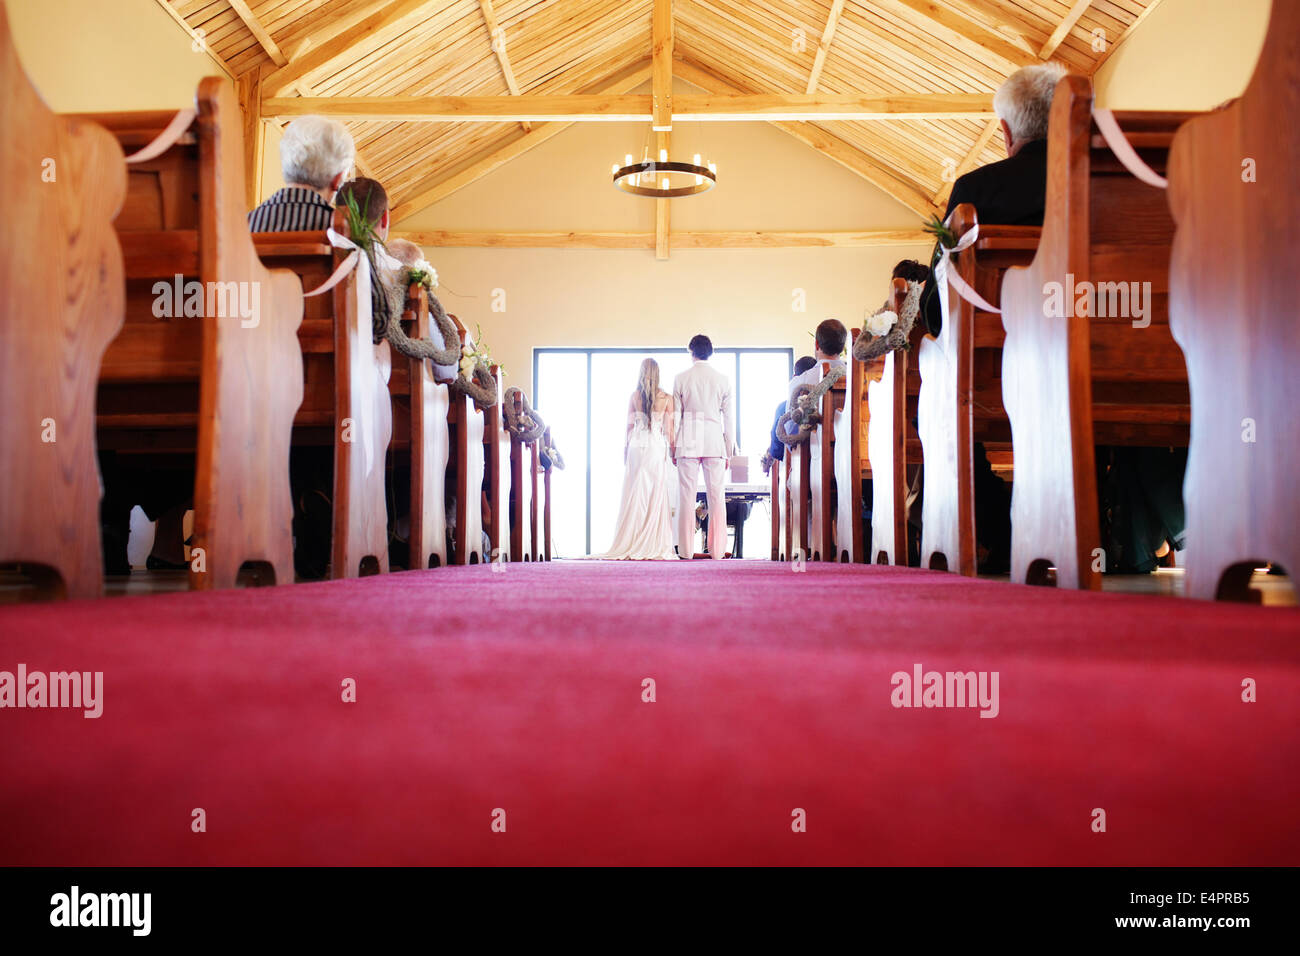 Red carpet lines the chapel aisle of the church in which a couple are wed - Stock Image